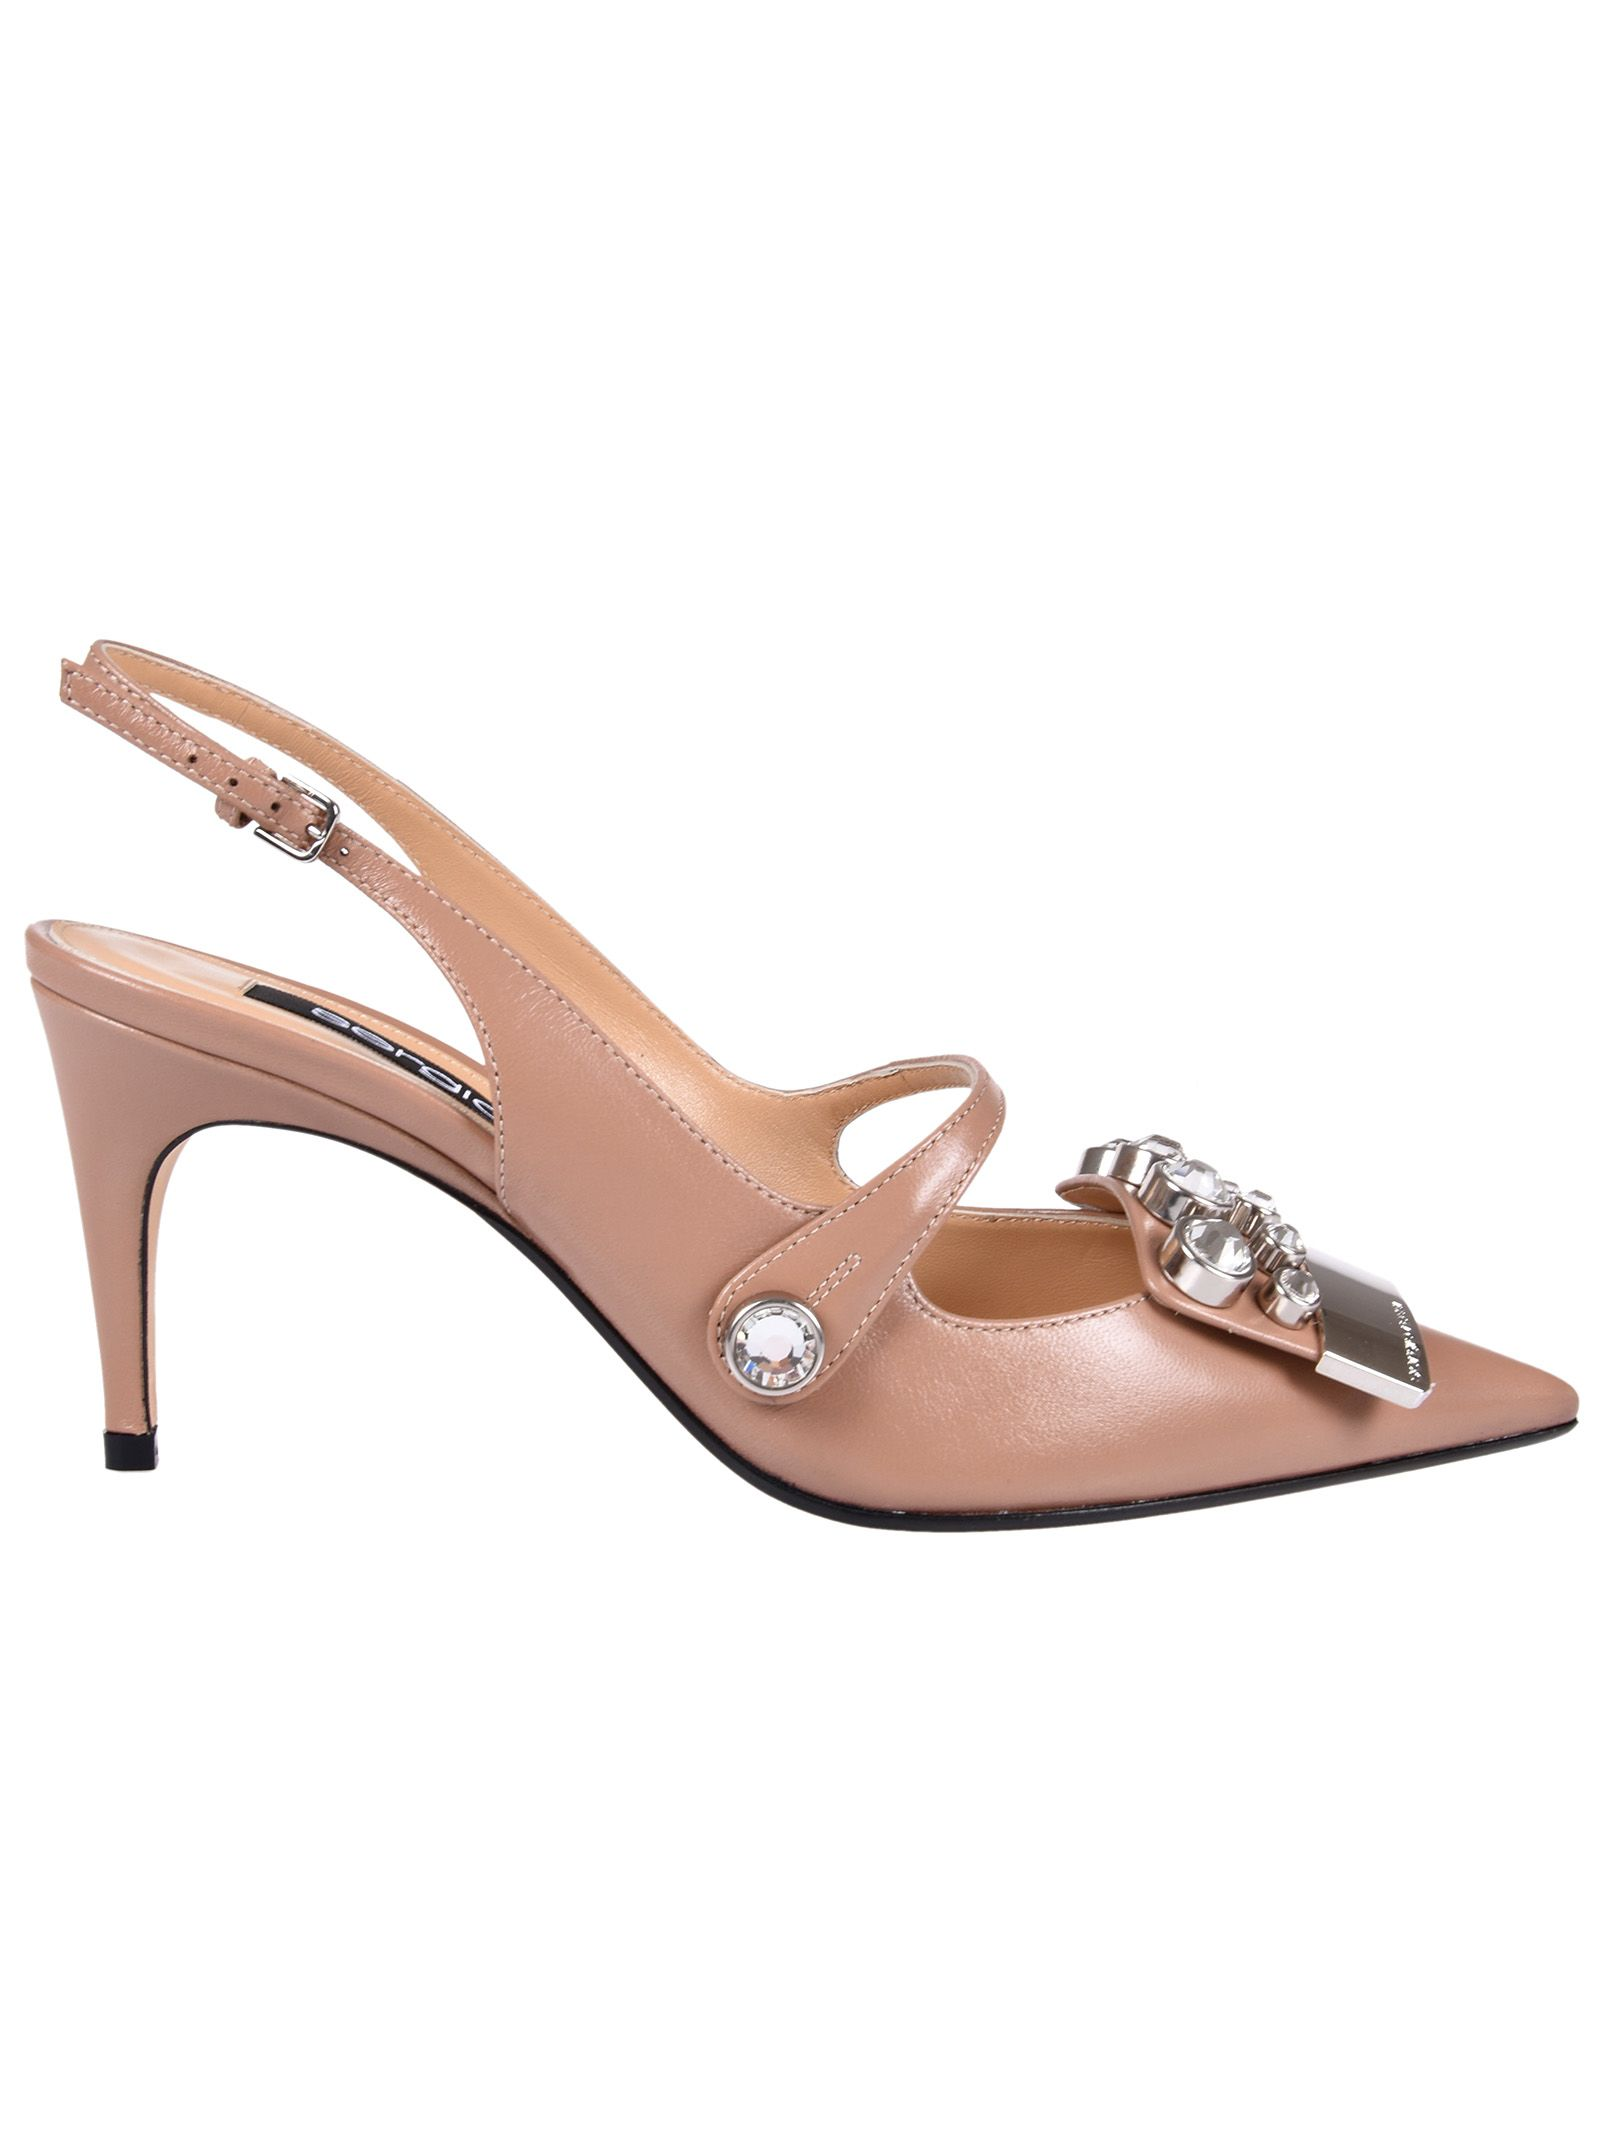 studded mid-heel pumps - Nude & Neutrals Sergio Rossi XFf38ly2xl